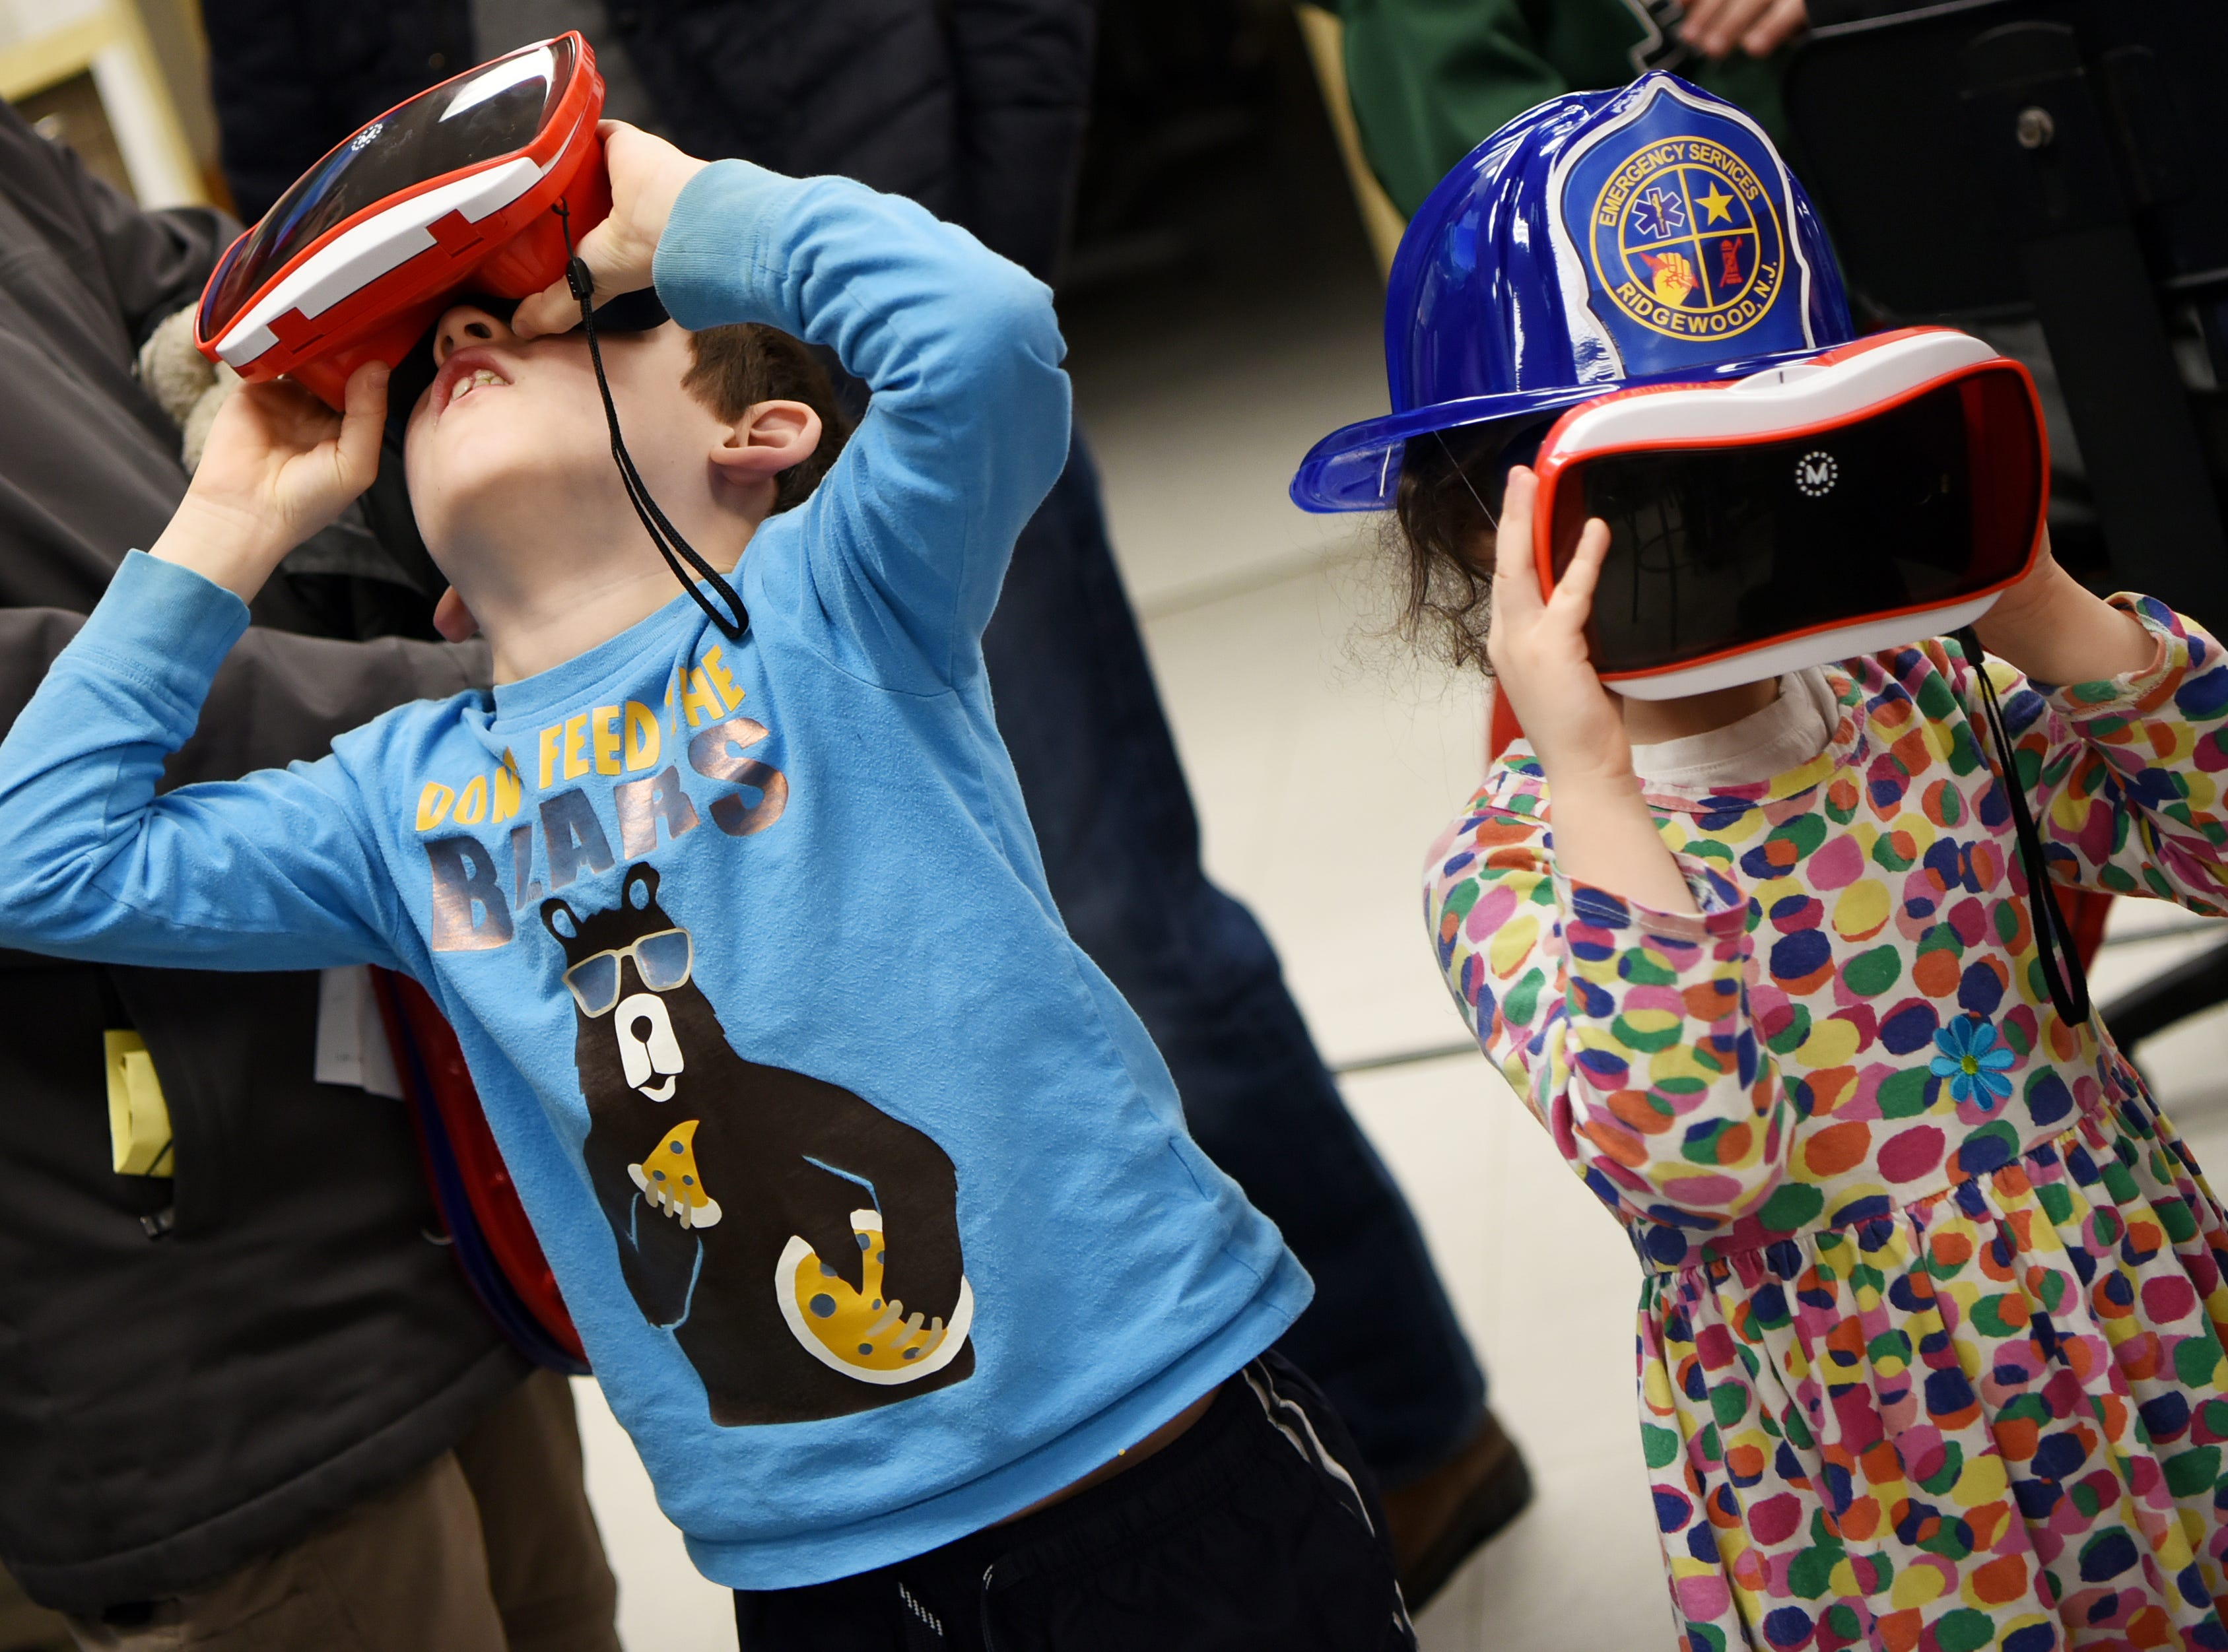 Eitan Mandelbaum, 7, and Naomi Mandlebaum, 5, wear V.R. goggles. This is one of many activities during Super Science Saturday held at Ridgewood High School in Ridgewood on Saturday March 2, 2019.